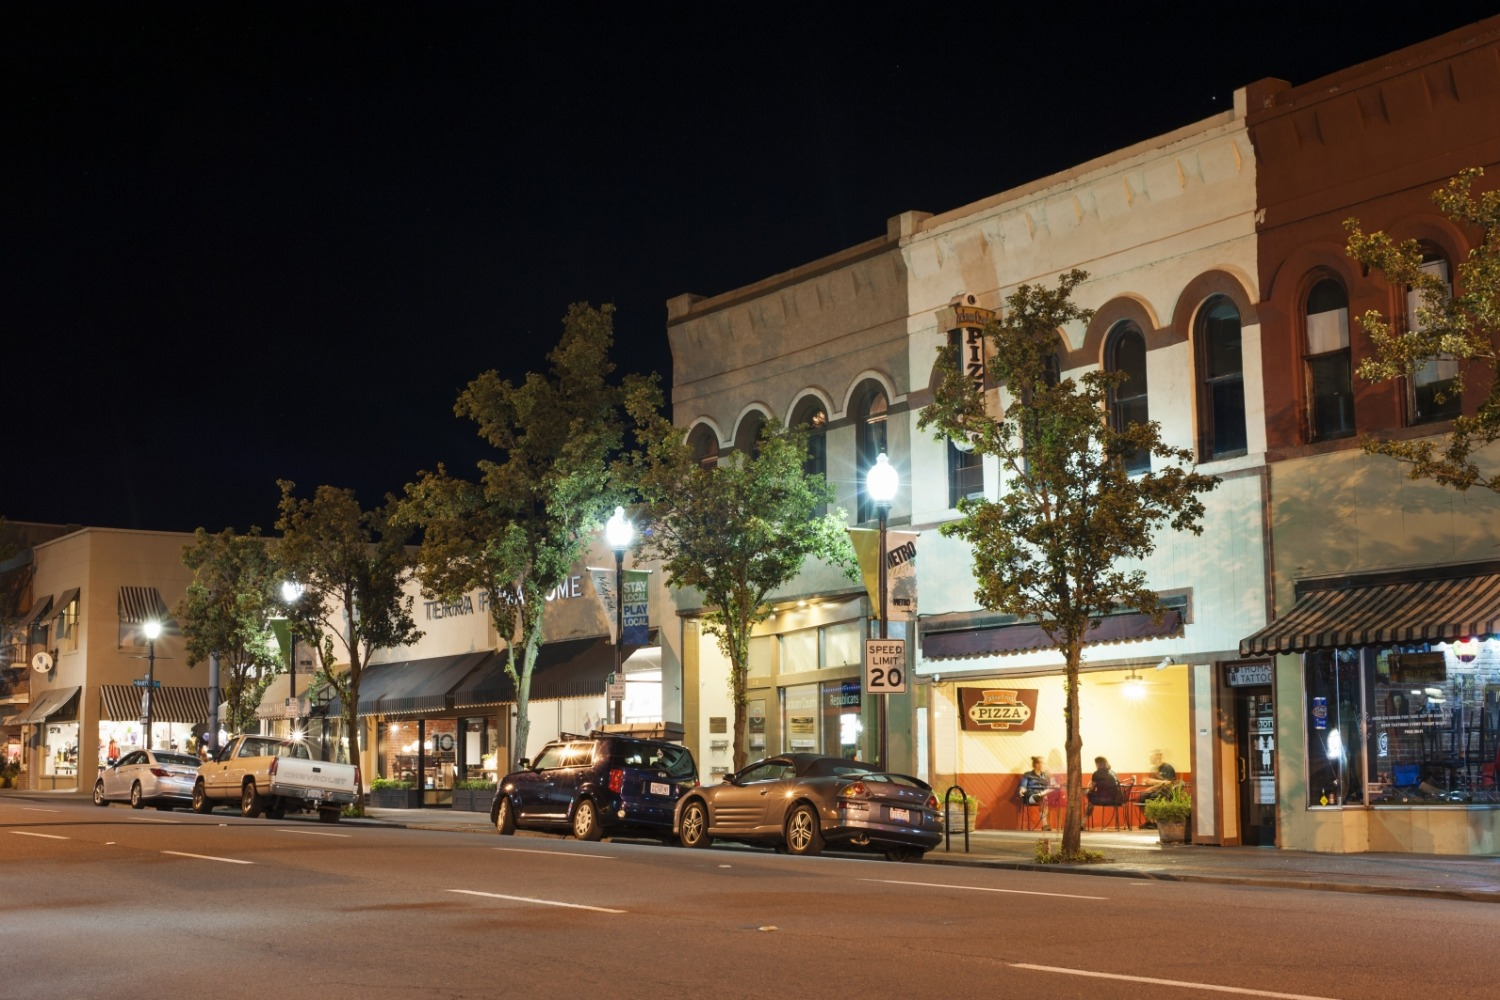 Downtown Medford at night